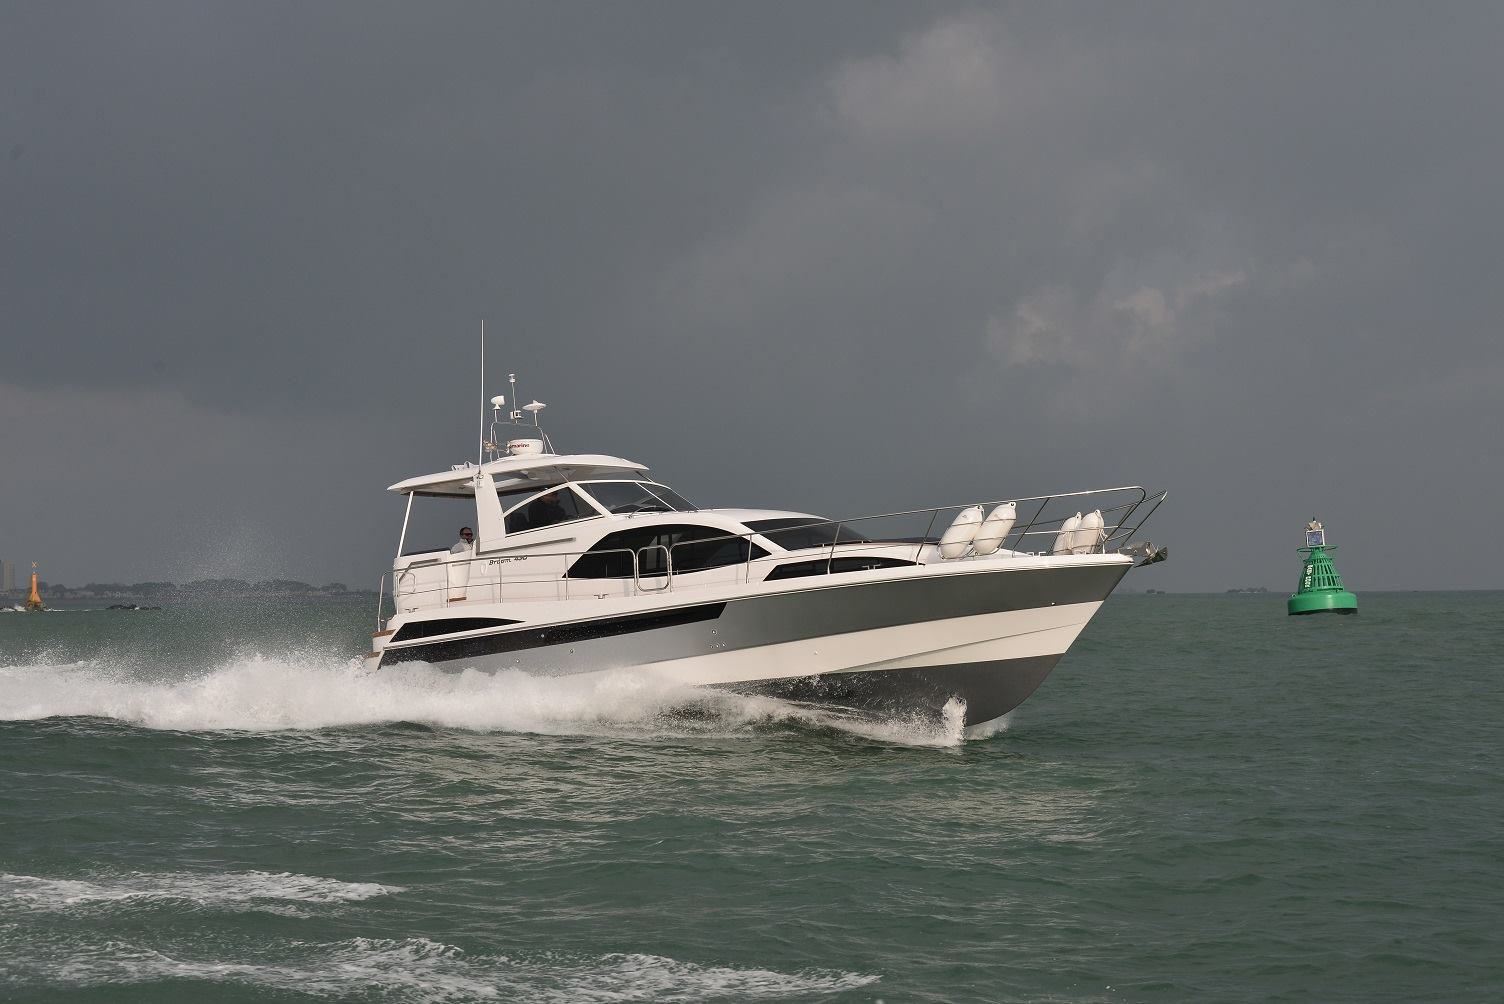 Broom 430 First Impressions Of The New Cruiser Motor